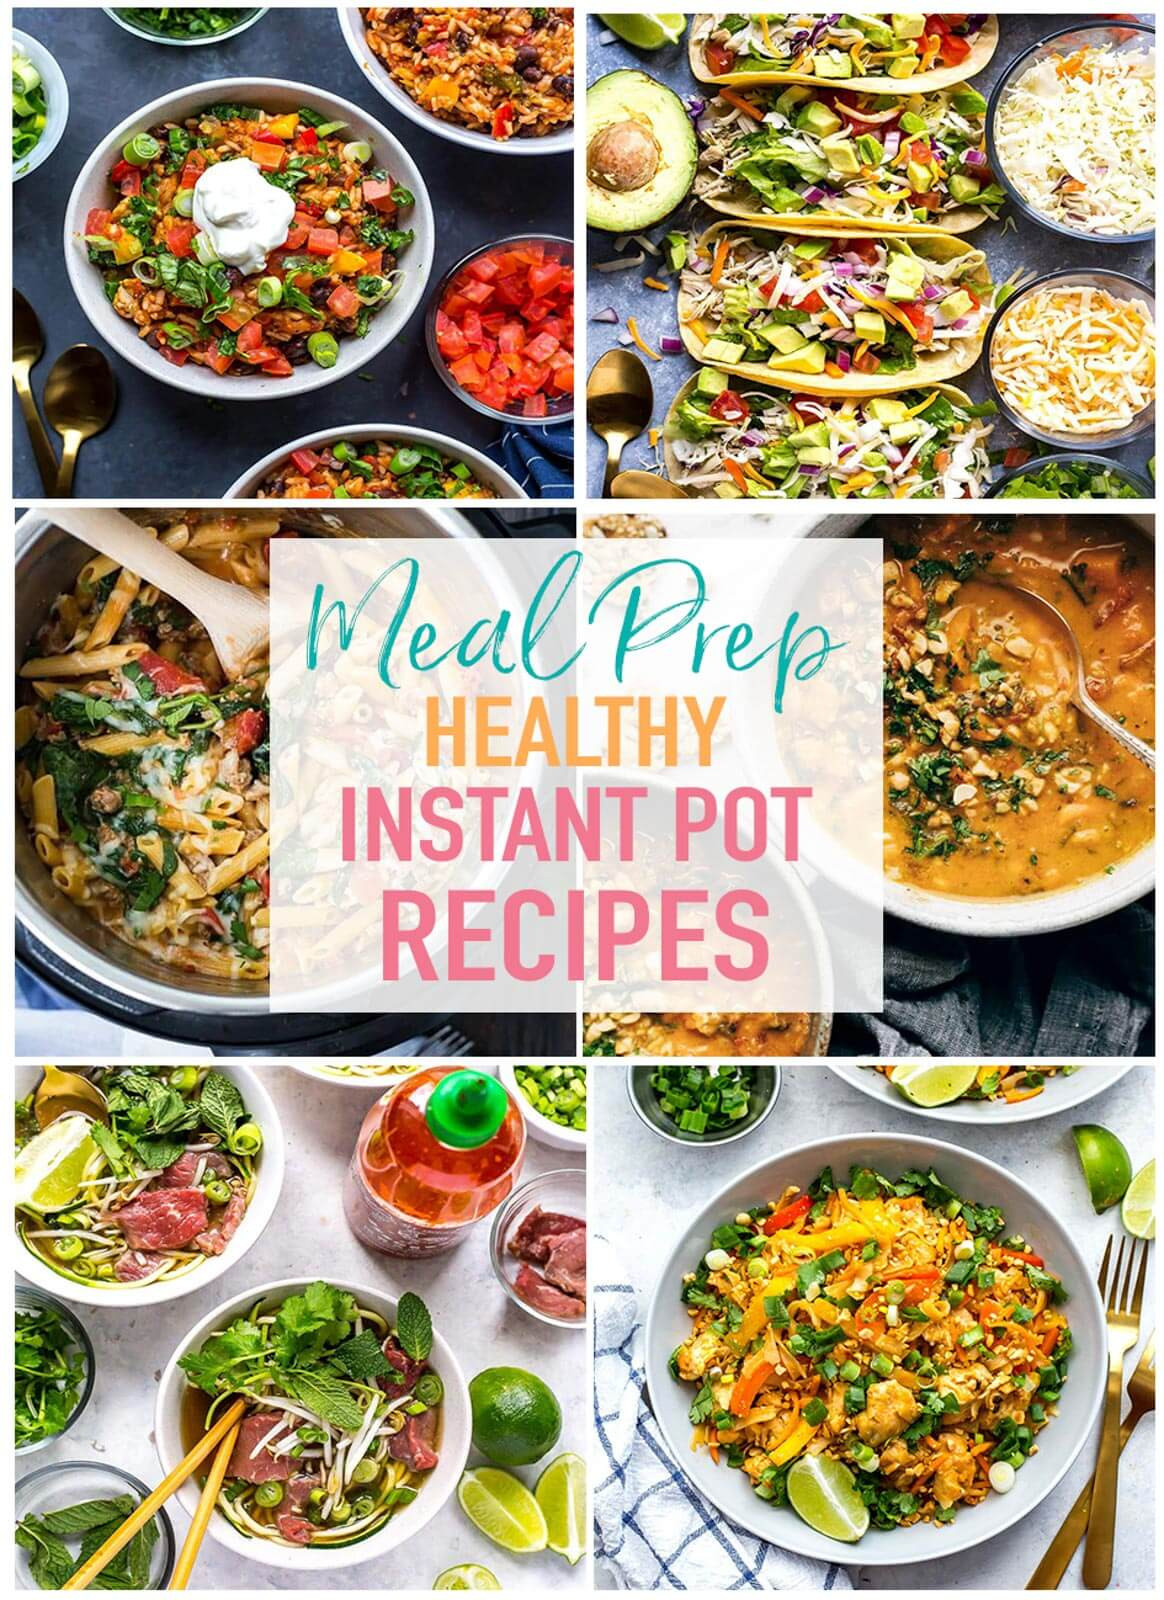 Healthy Instant Pot Dinner Recipes  17 Healthy Instant Pot Recipes for Meal Prep The Girl on